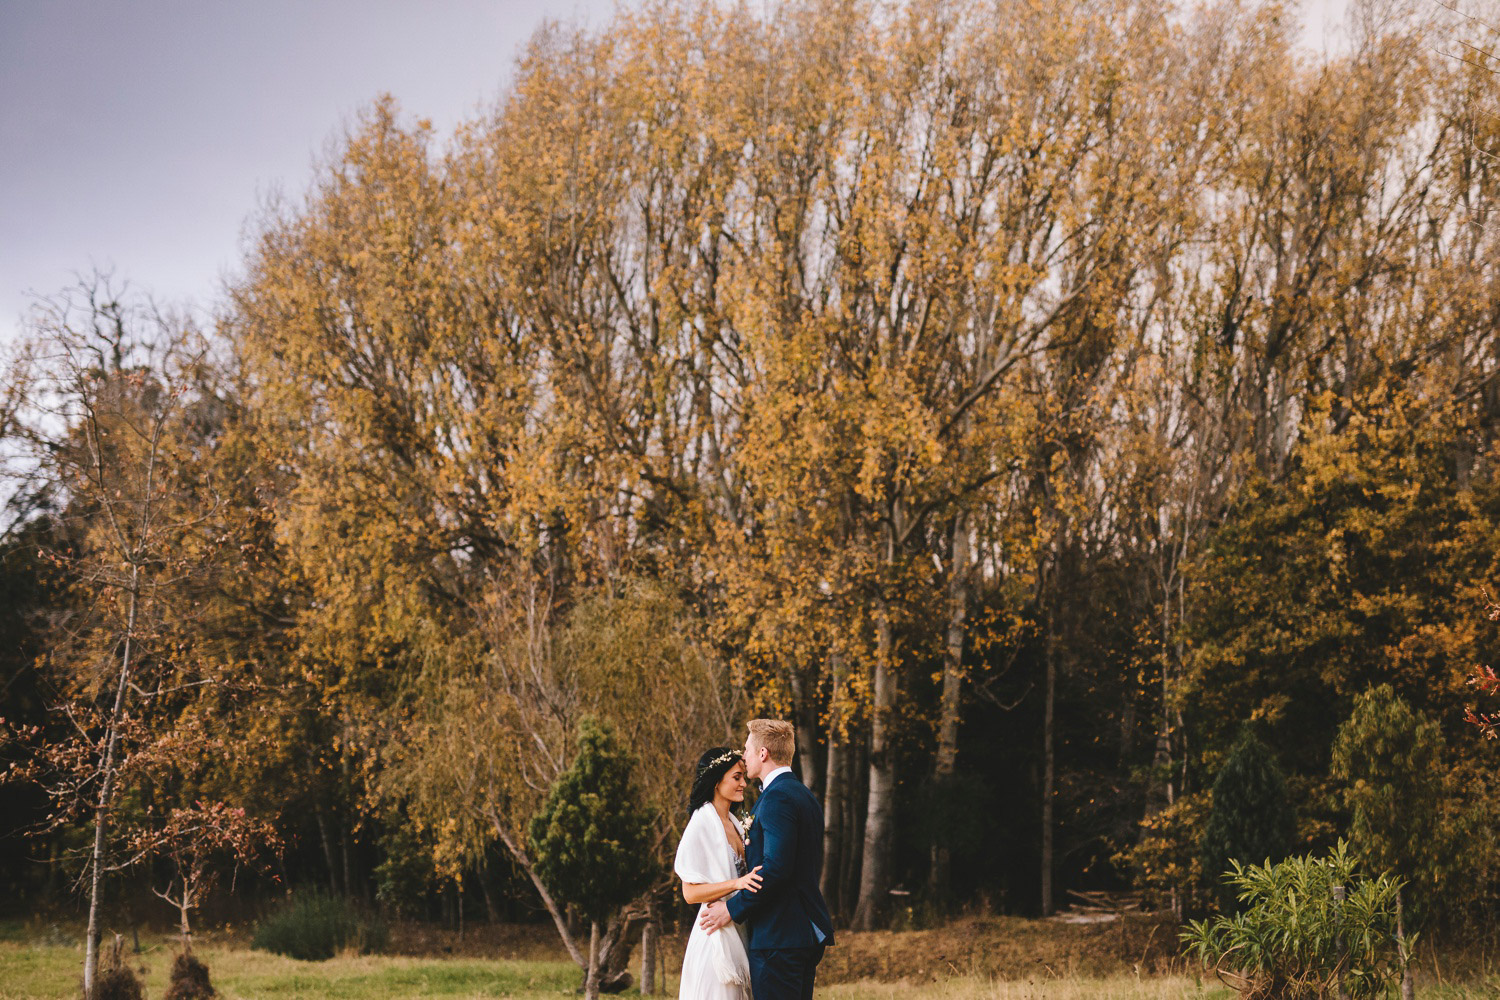 western-cape-photoghers-gen-scott-greyton-wedding-photography-charlie-ray93.jpg